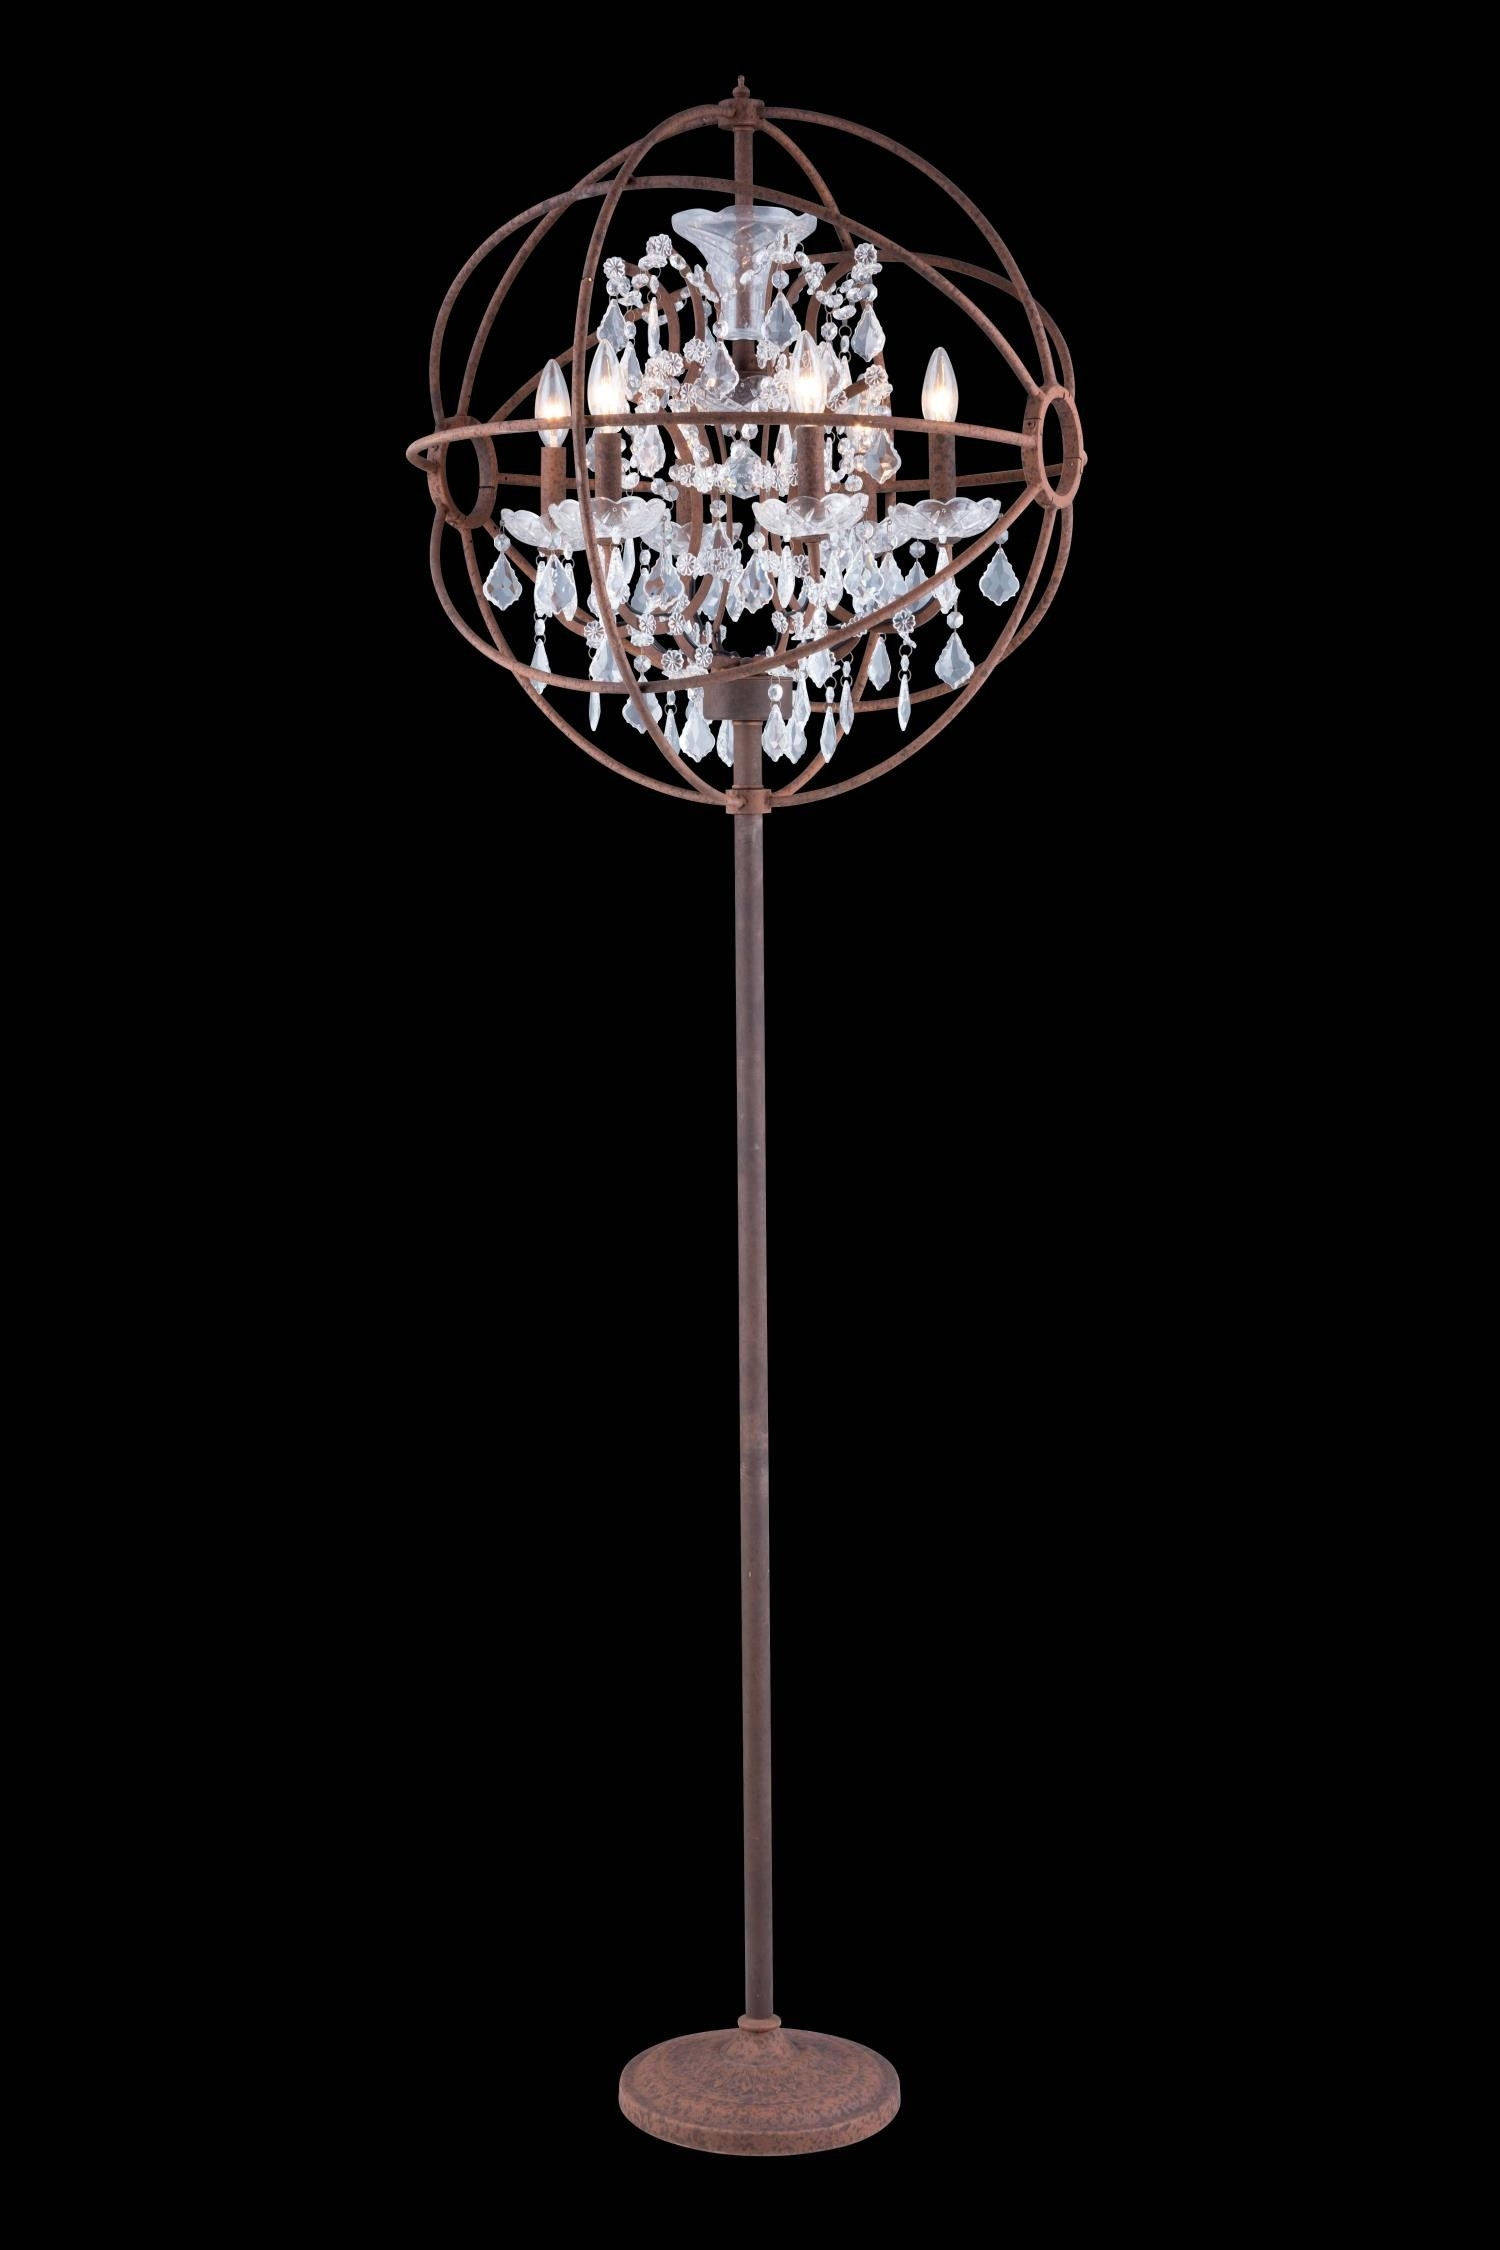 Lights Tall Chandelier Lamp Crystal Floor Lamp Horchow Lamps Sale With Regard To Standing Chandelier Floor Lamps (Image 19 of 25)